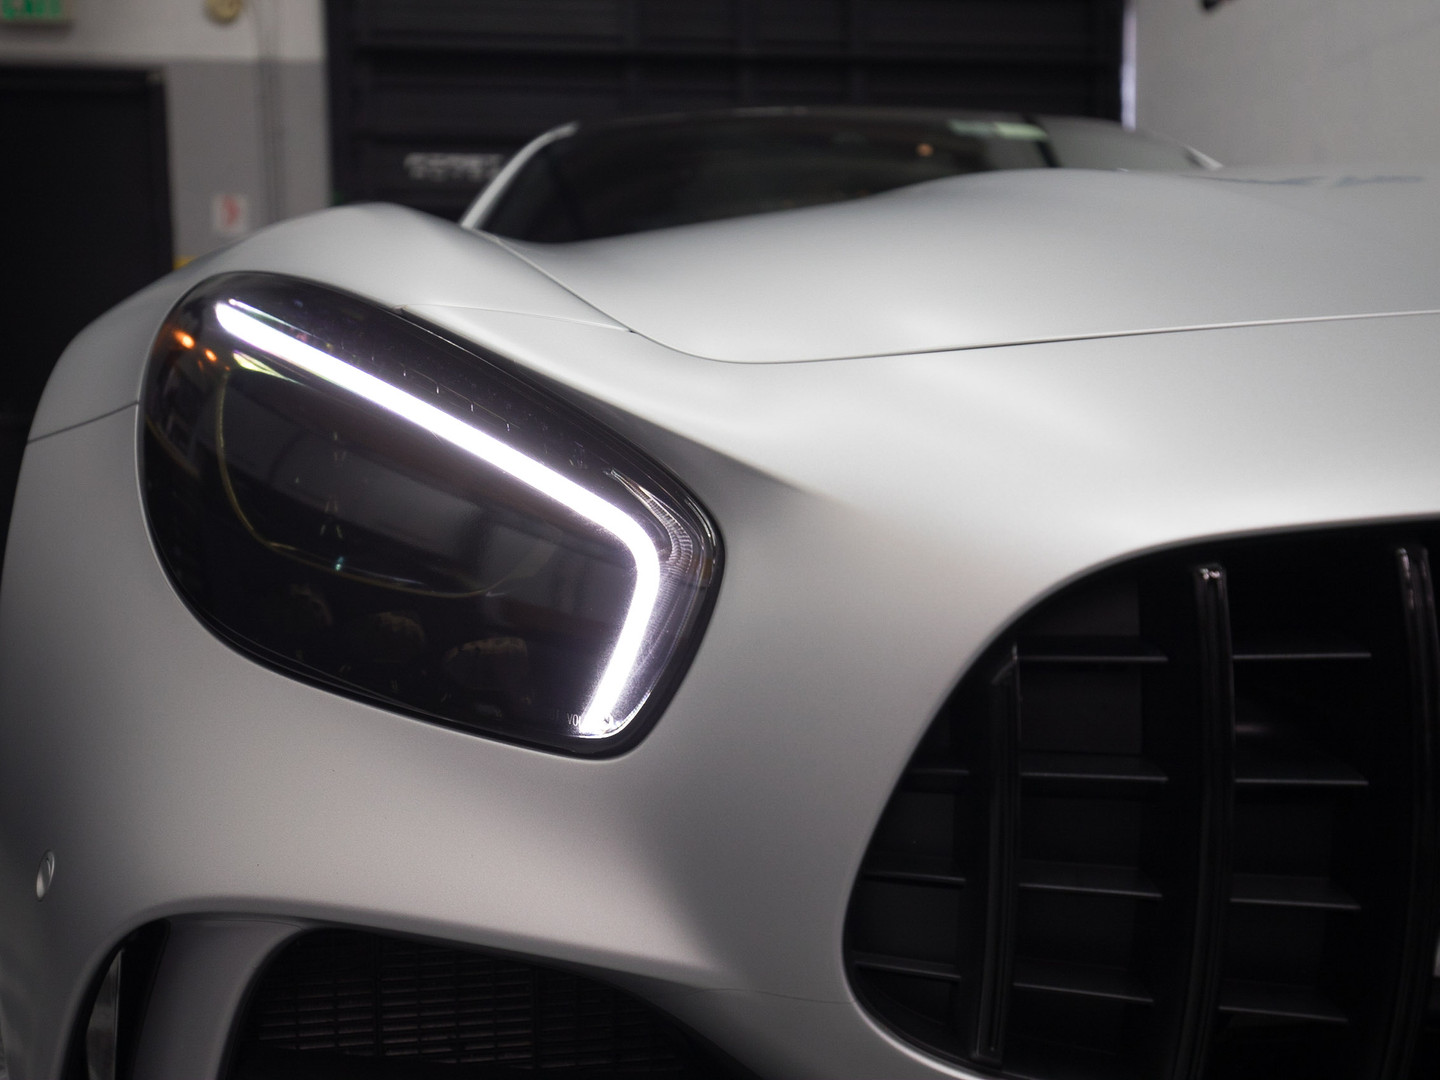 Mercedes Benz - Paint Protection Film Miami